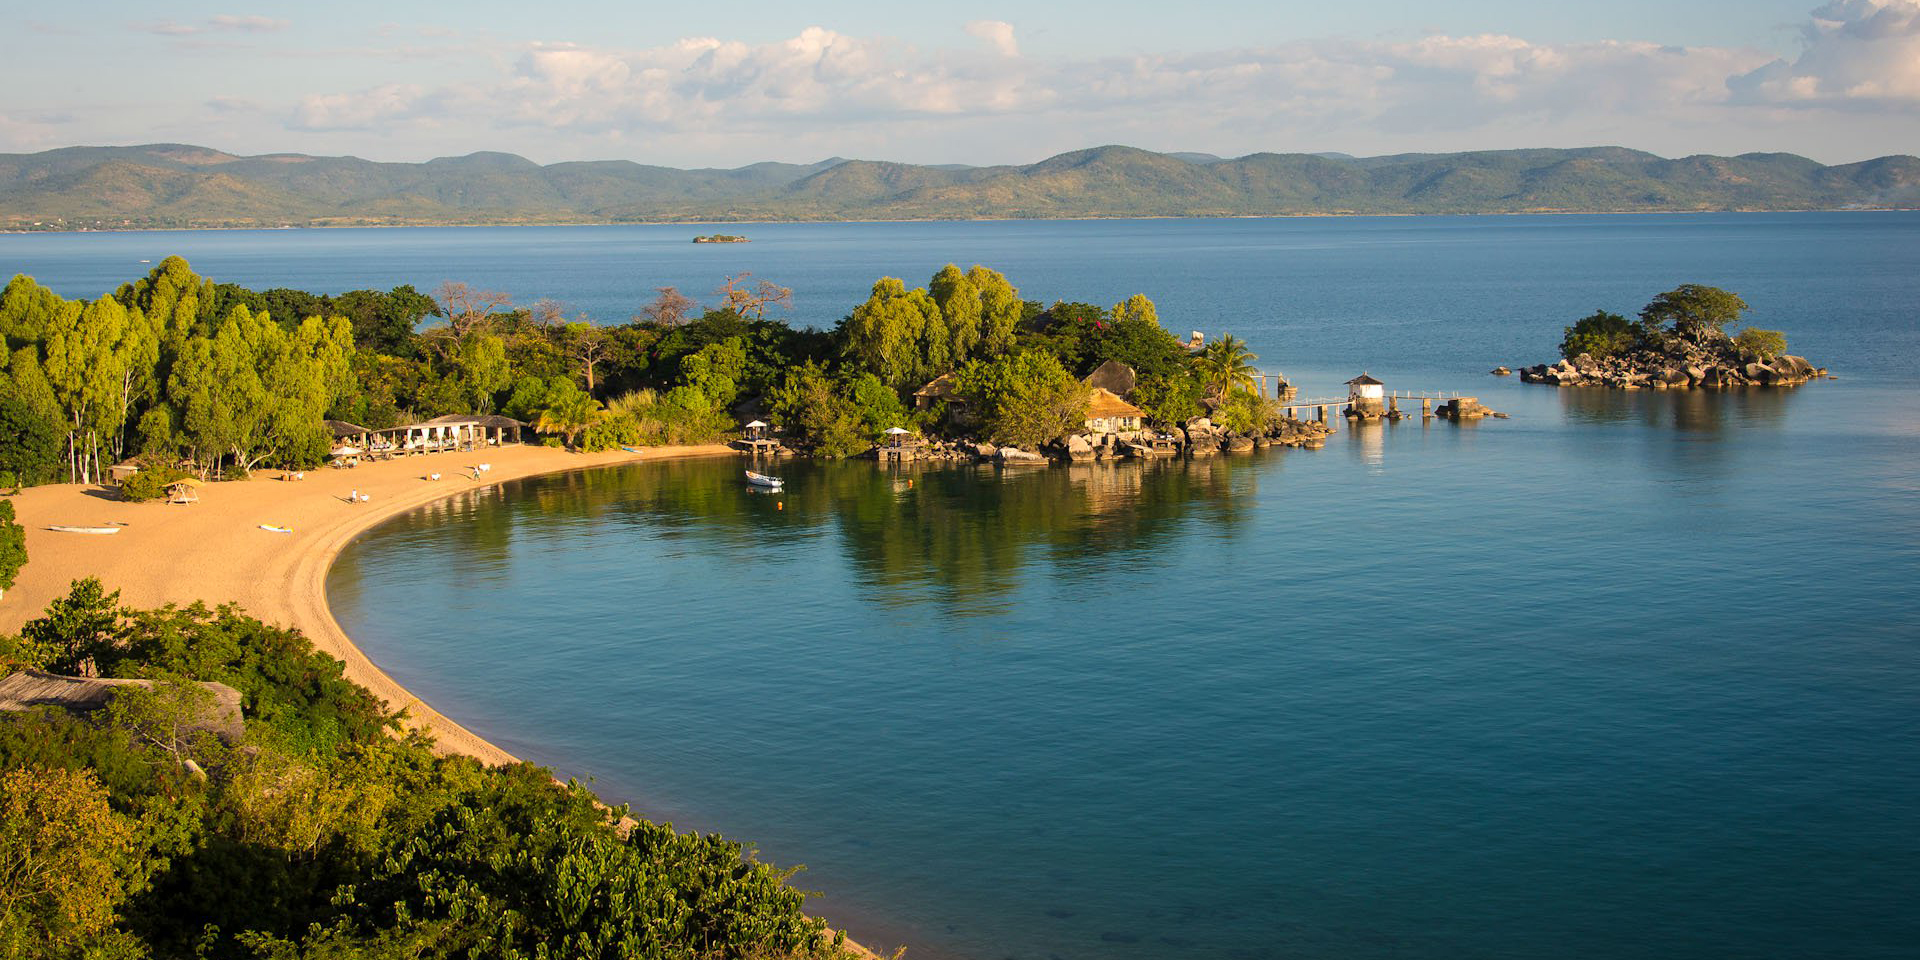 Part of the View of Lake Malawi